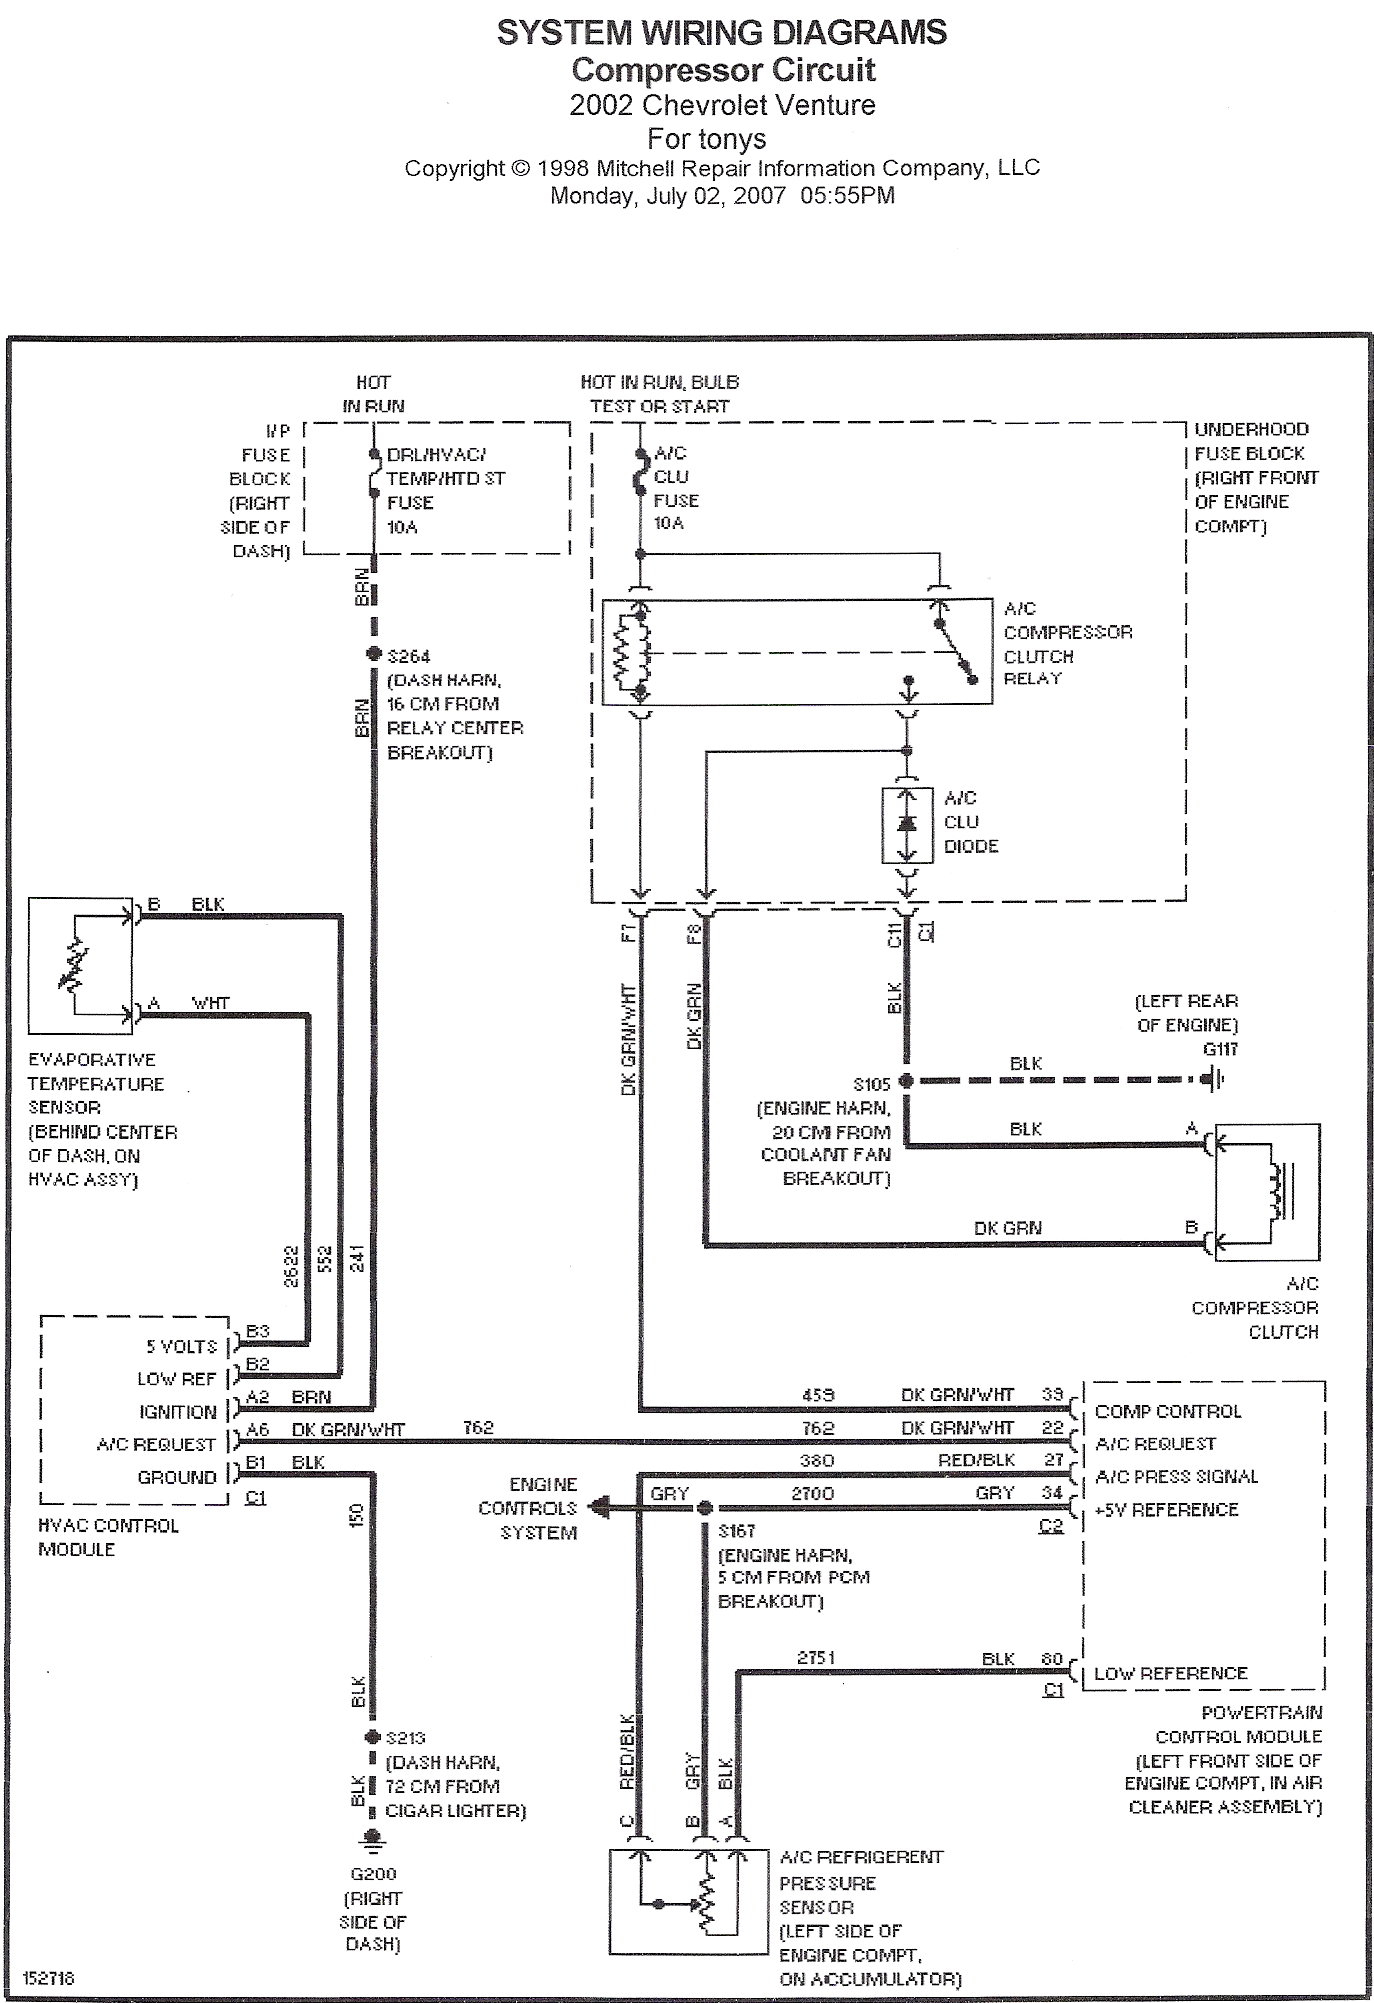 2003 chevy venture wiring diagram Download-2004 Chevy Venture Wiring Diagram 1-a